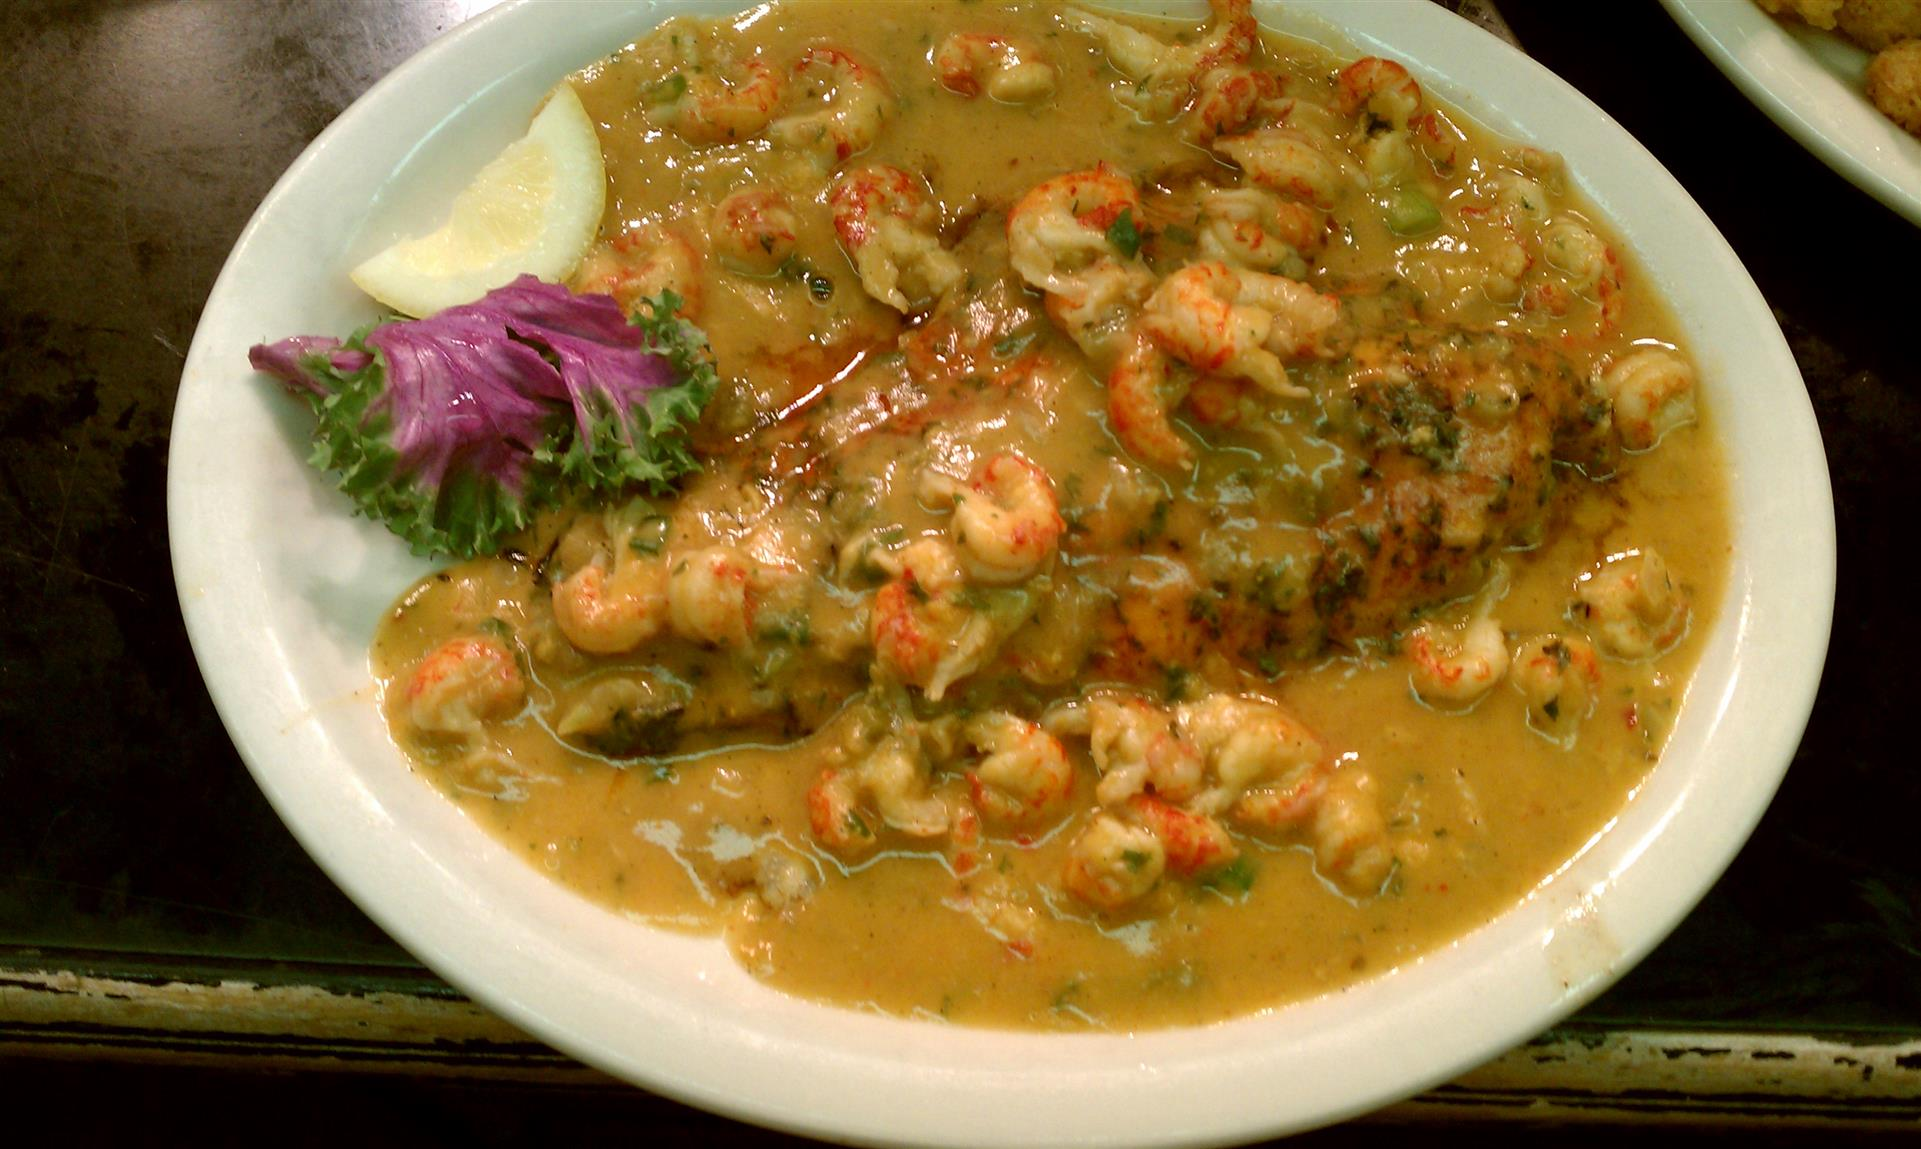 Cajun Catfish in sauce with vegetables